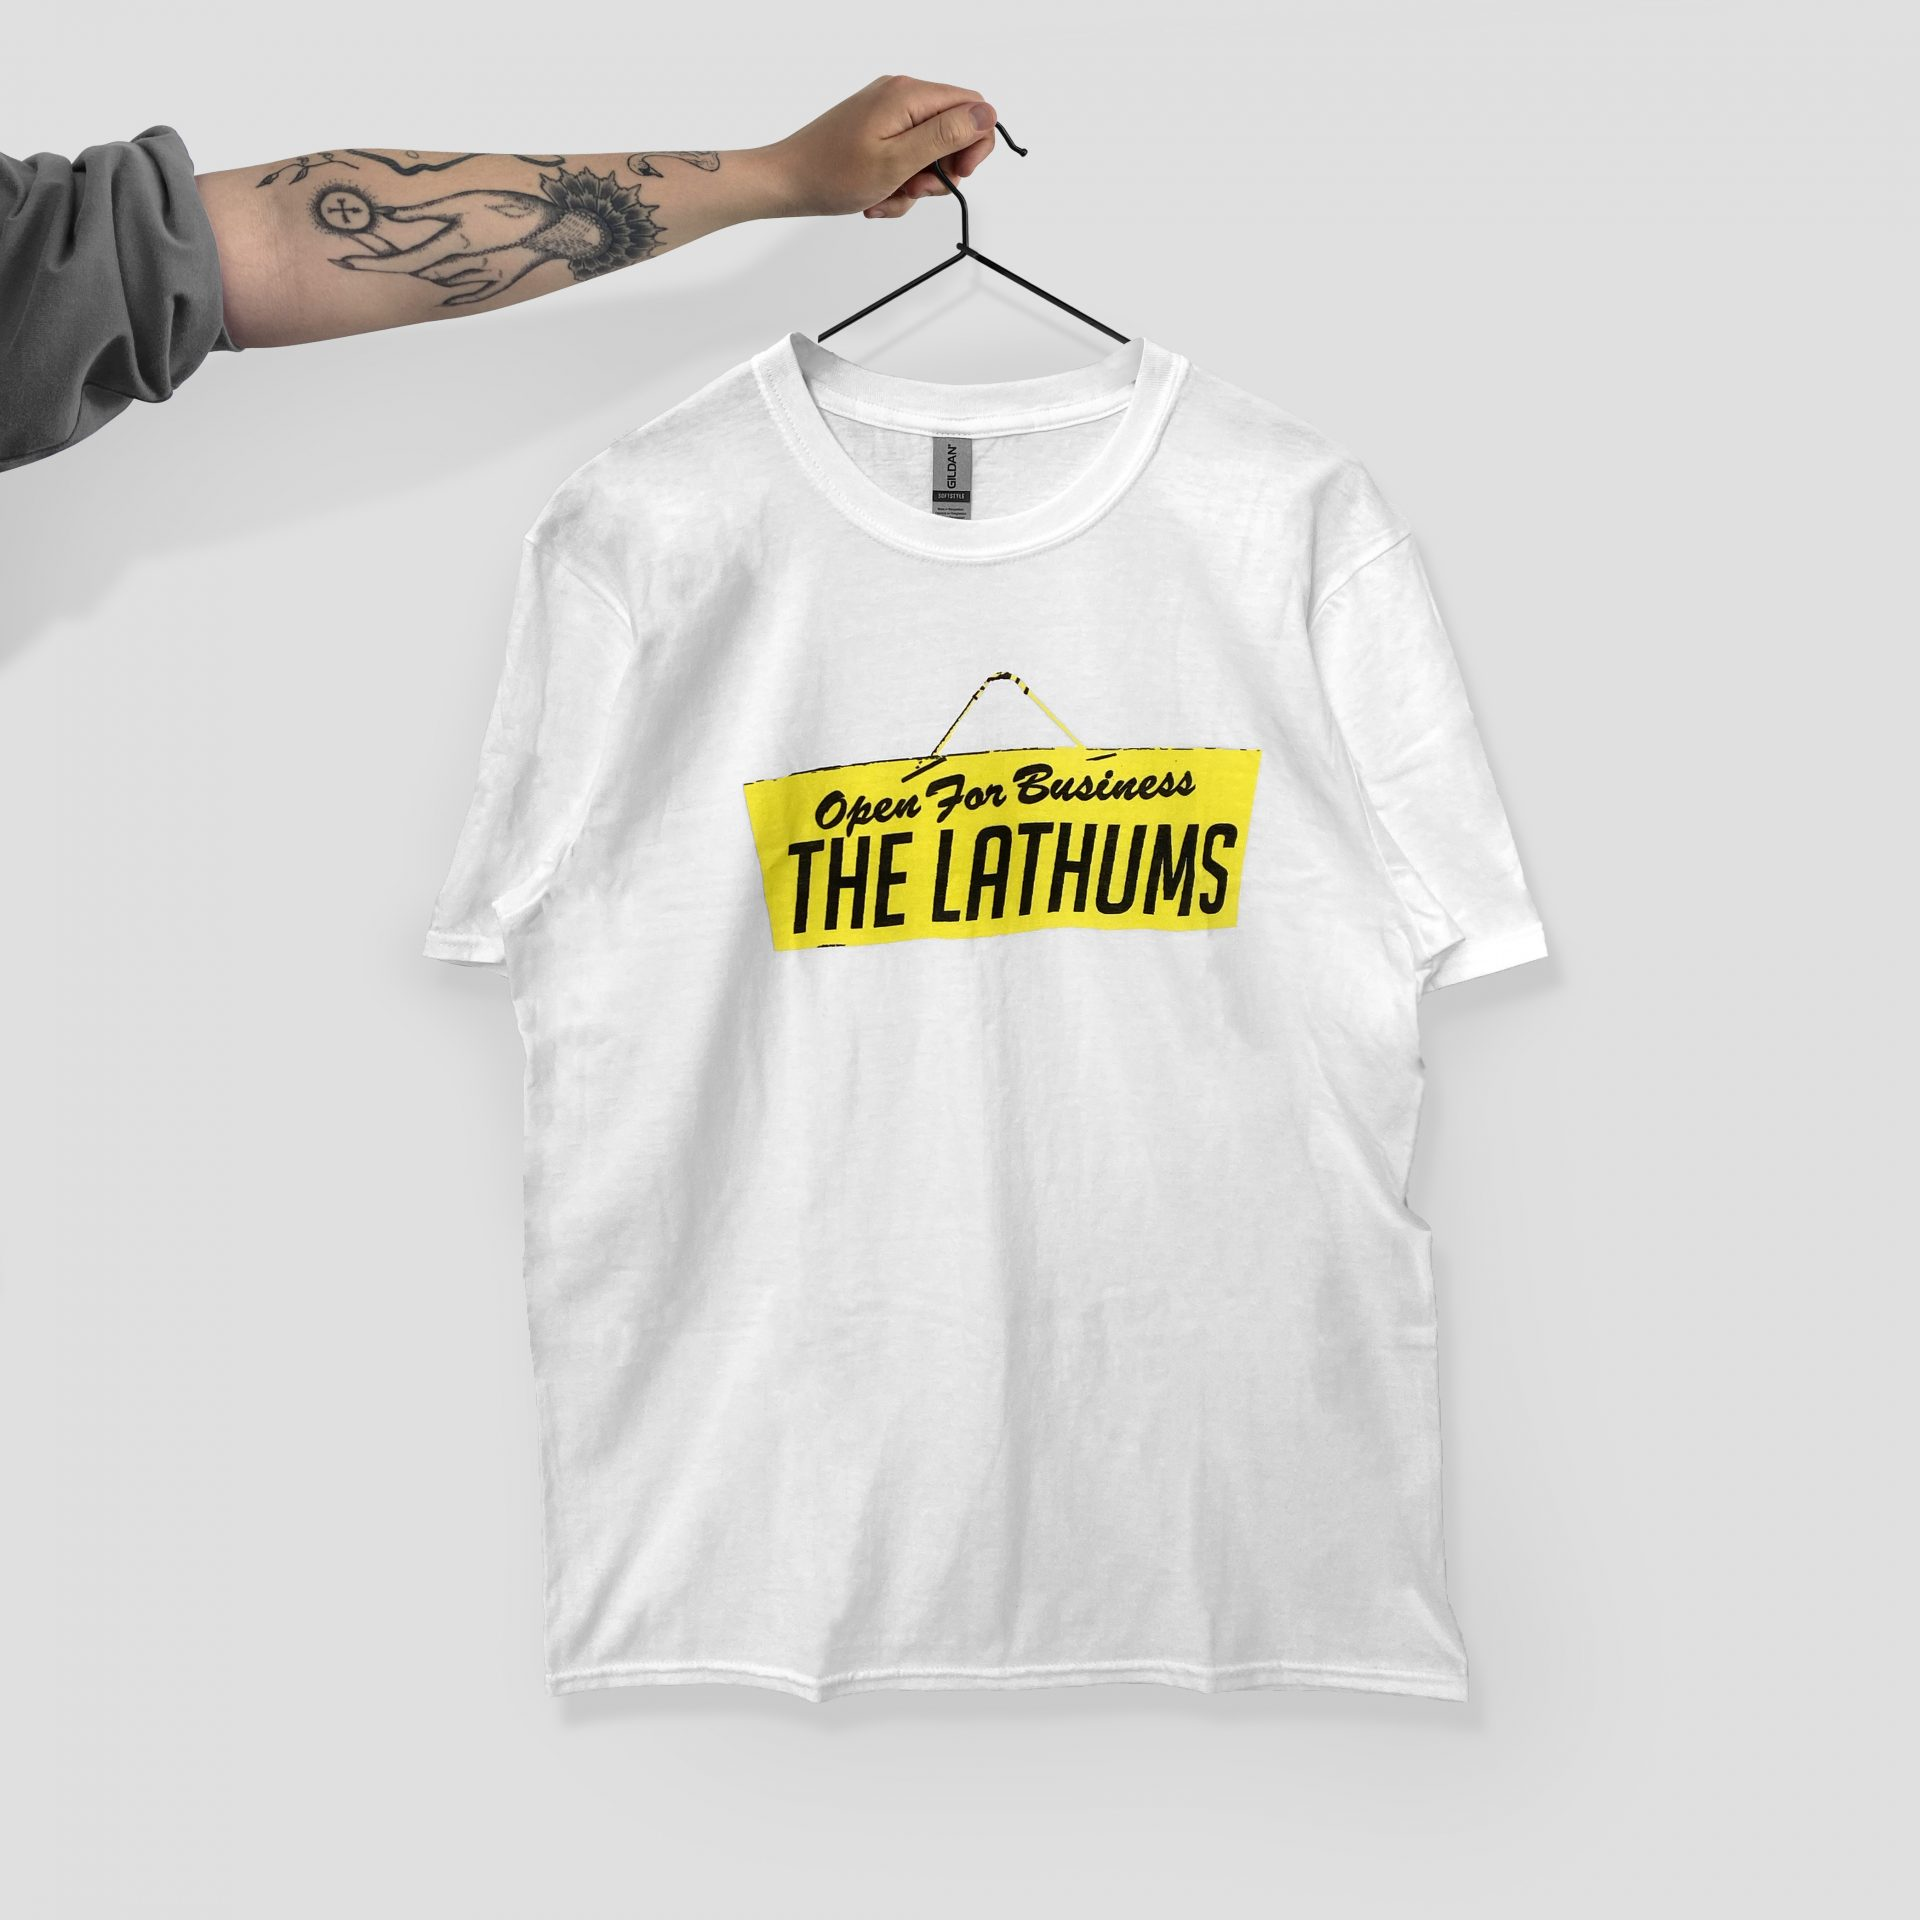 Universal music printe t-shirt by Paul Bristow's for The Lathums